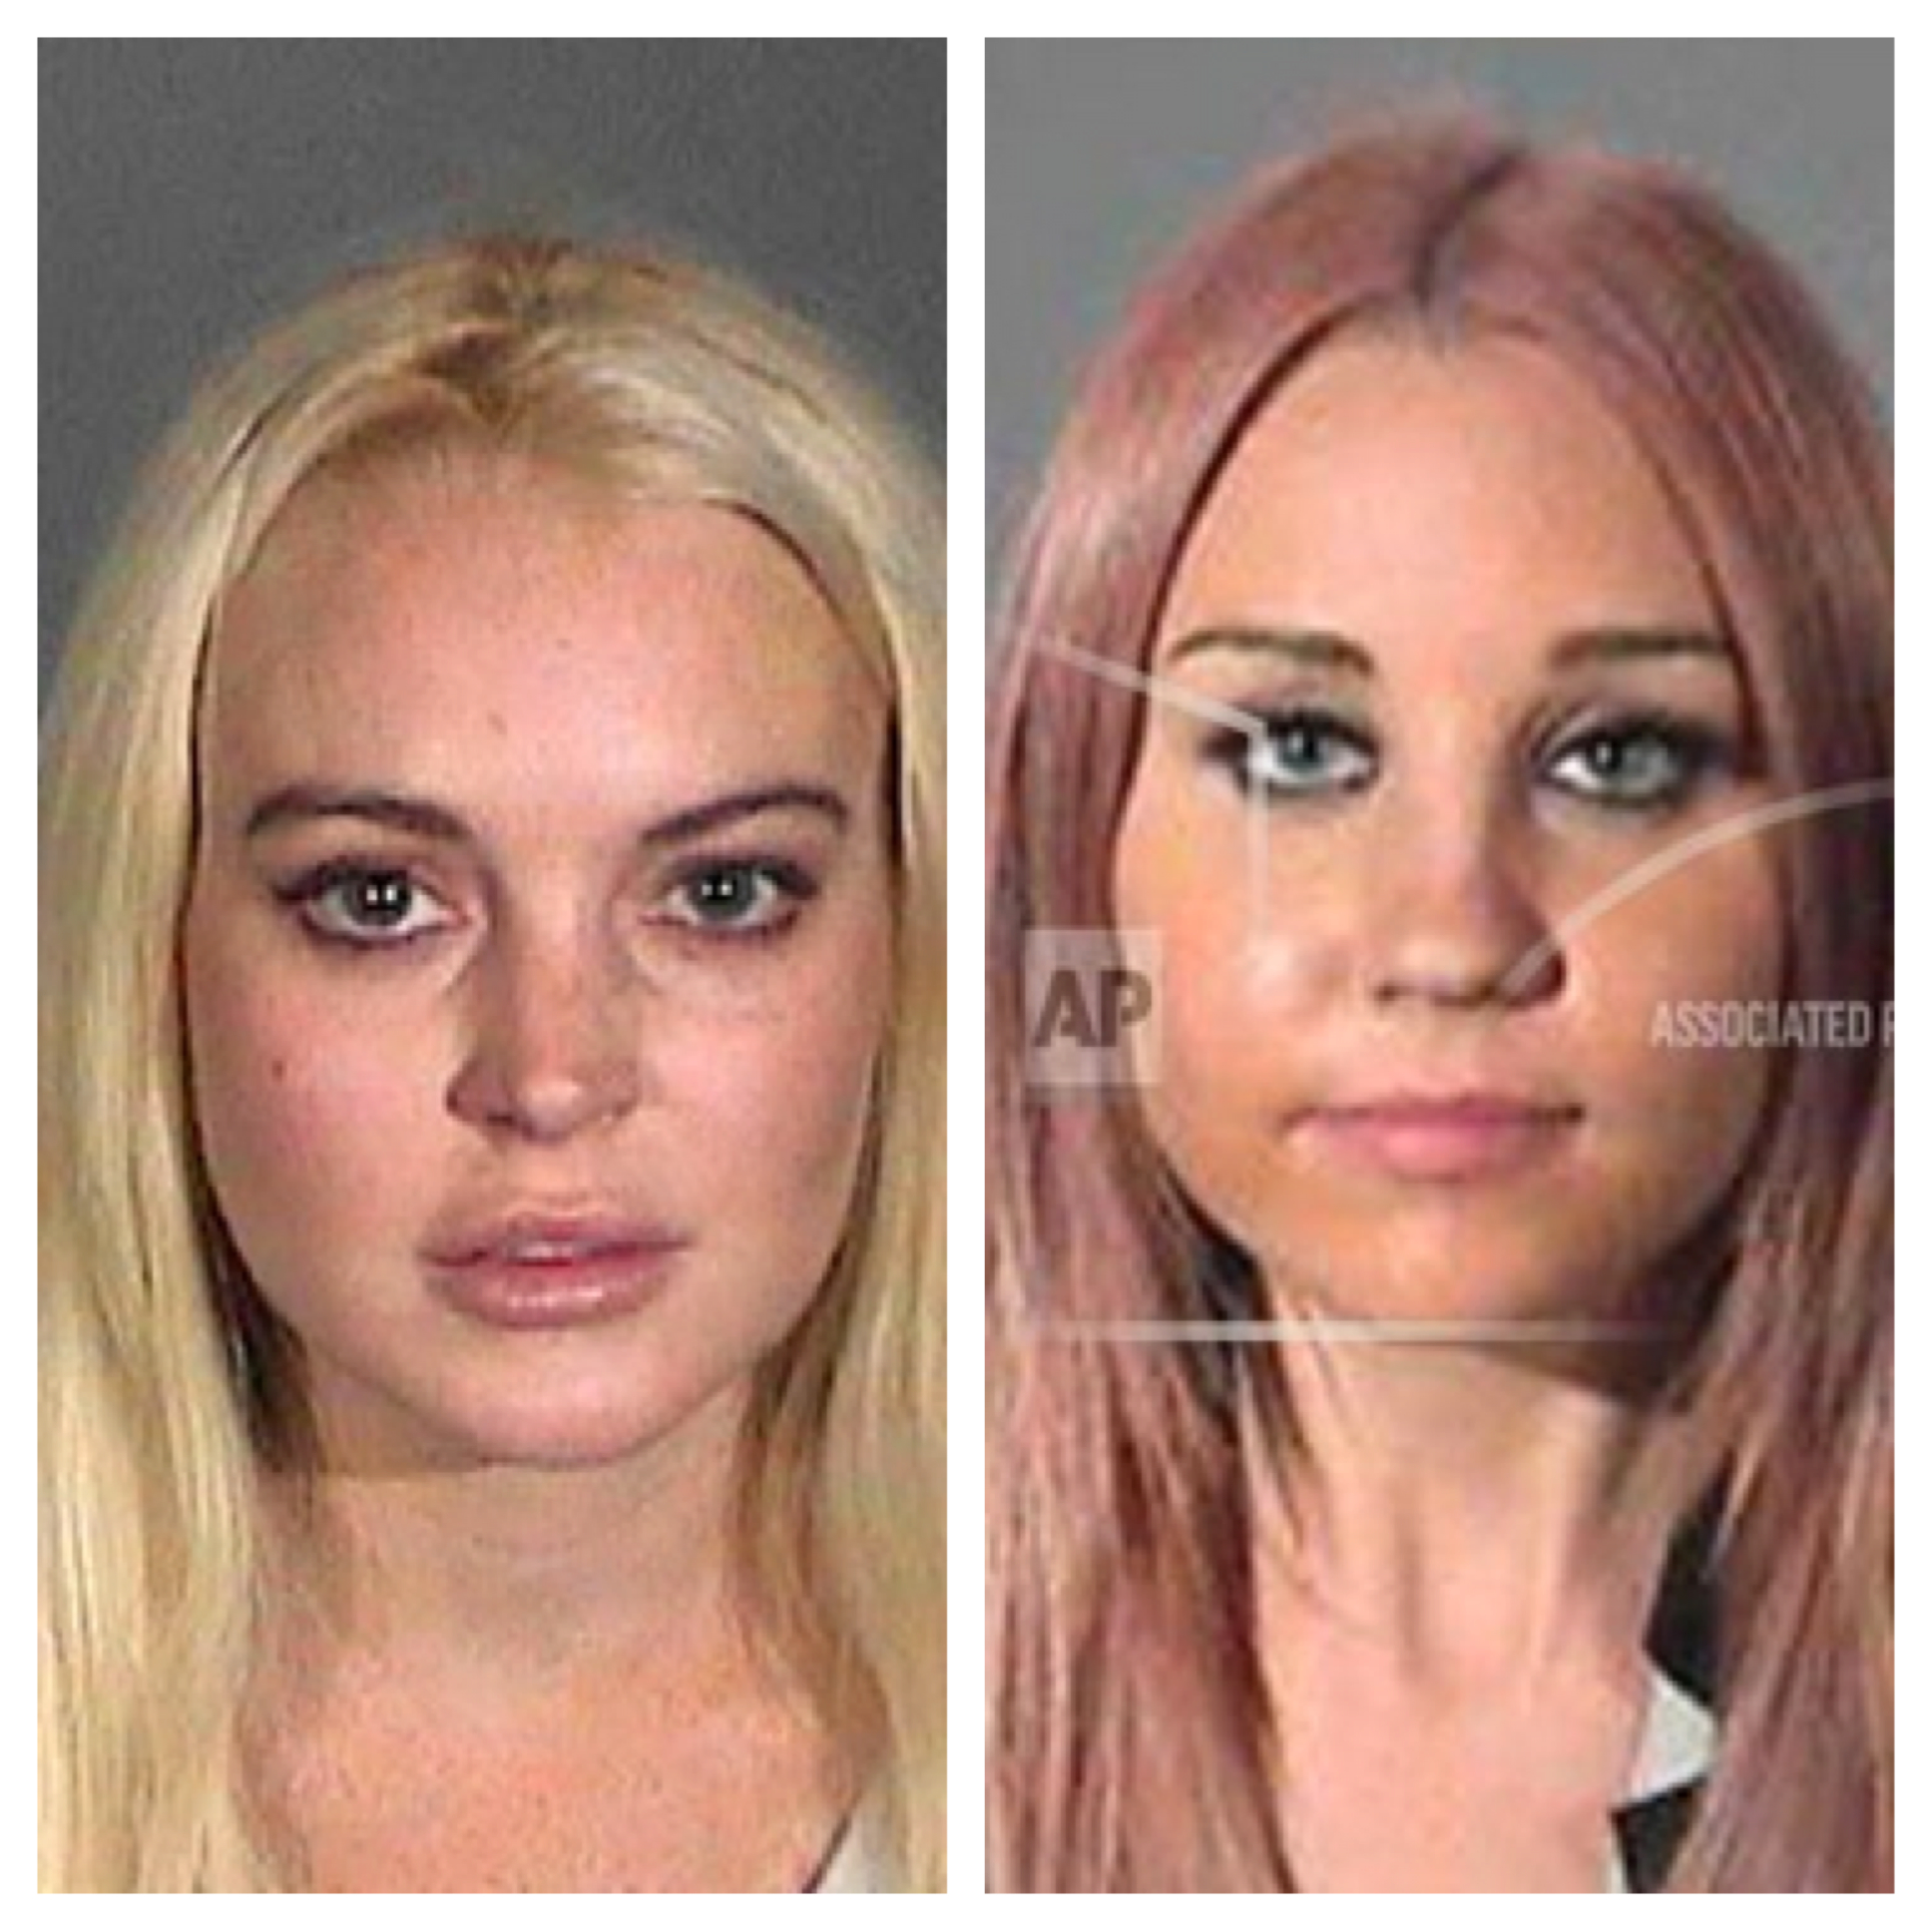 An Interaction Between Lindsay Lohan and Amanda Bynes